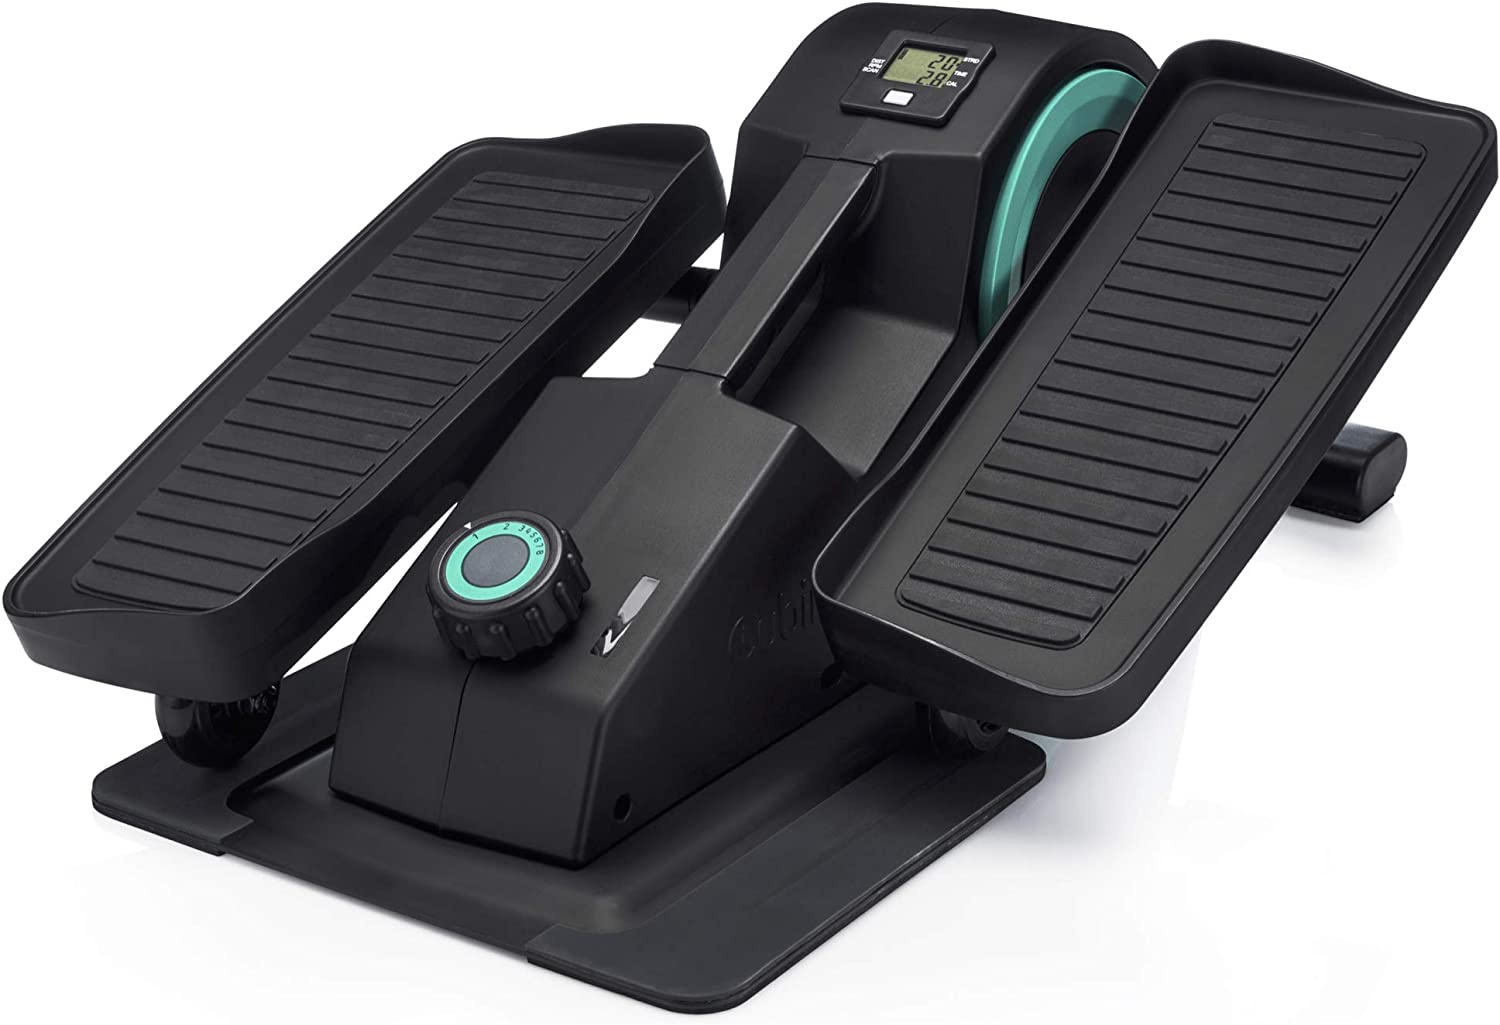 Cubii JR1: Seated Under Desk Elliptical Machine for Home Workout! 9.99 (REG 9.00) at Woot!